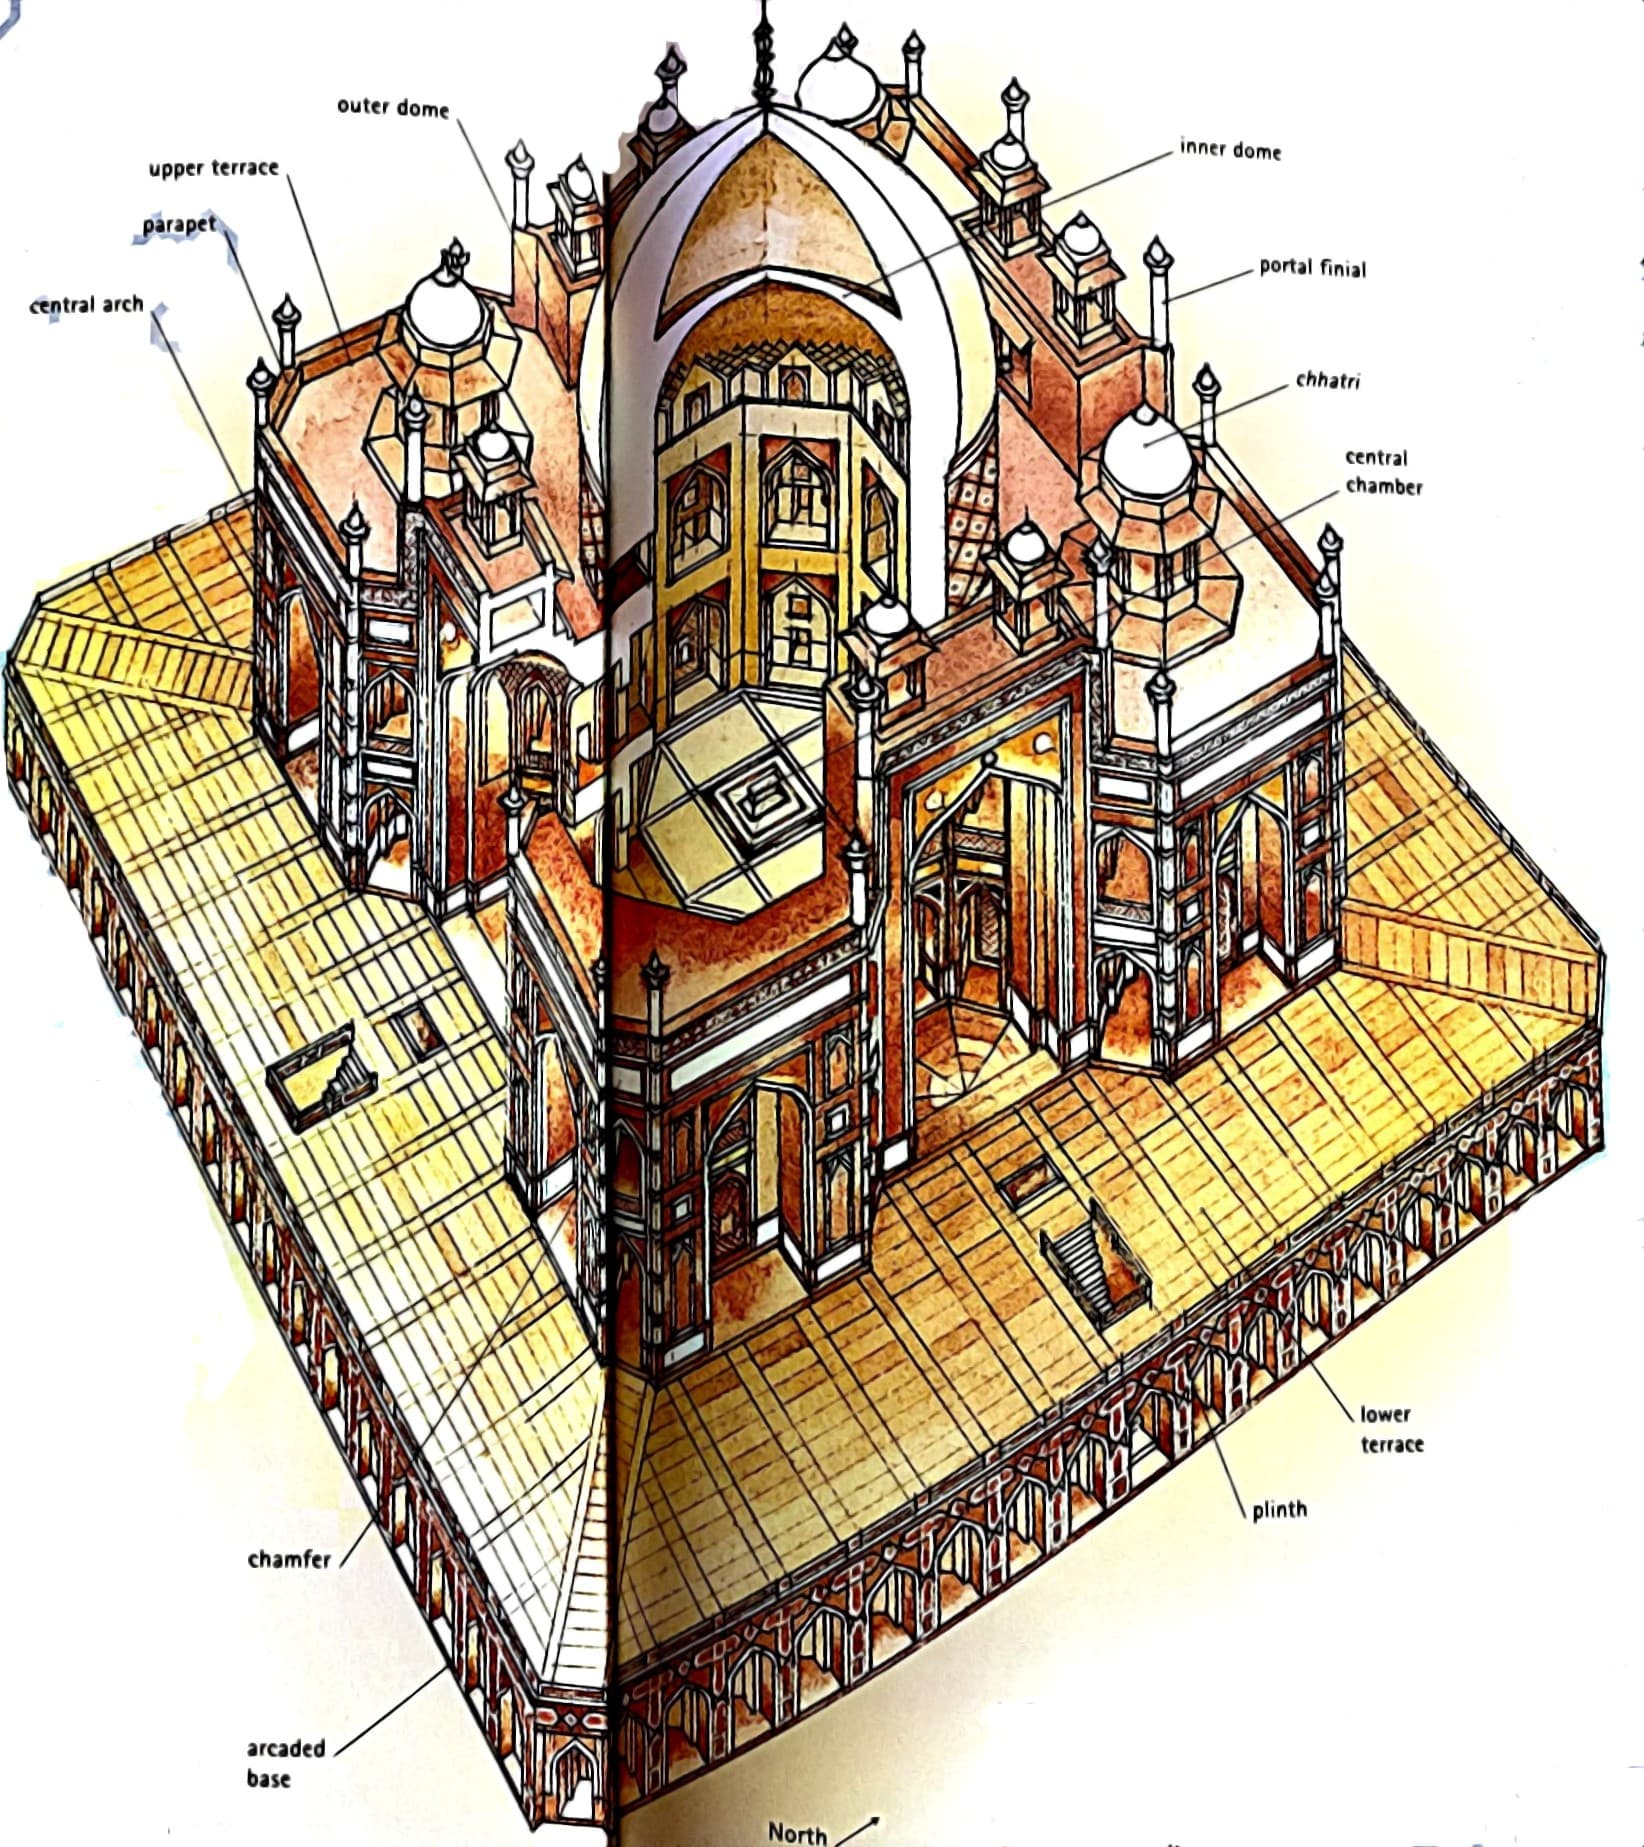 Sectional View of Humayun's Tomb (PC - Great Monuments of India)